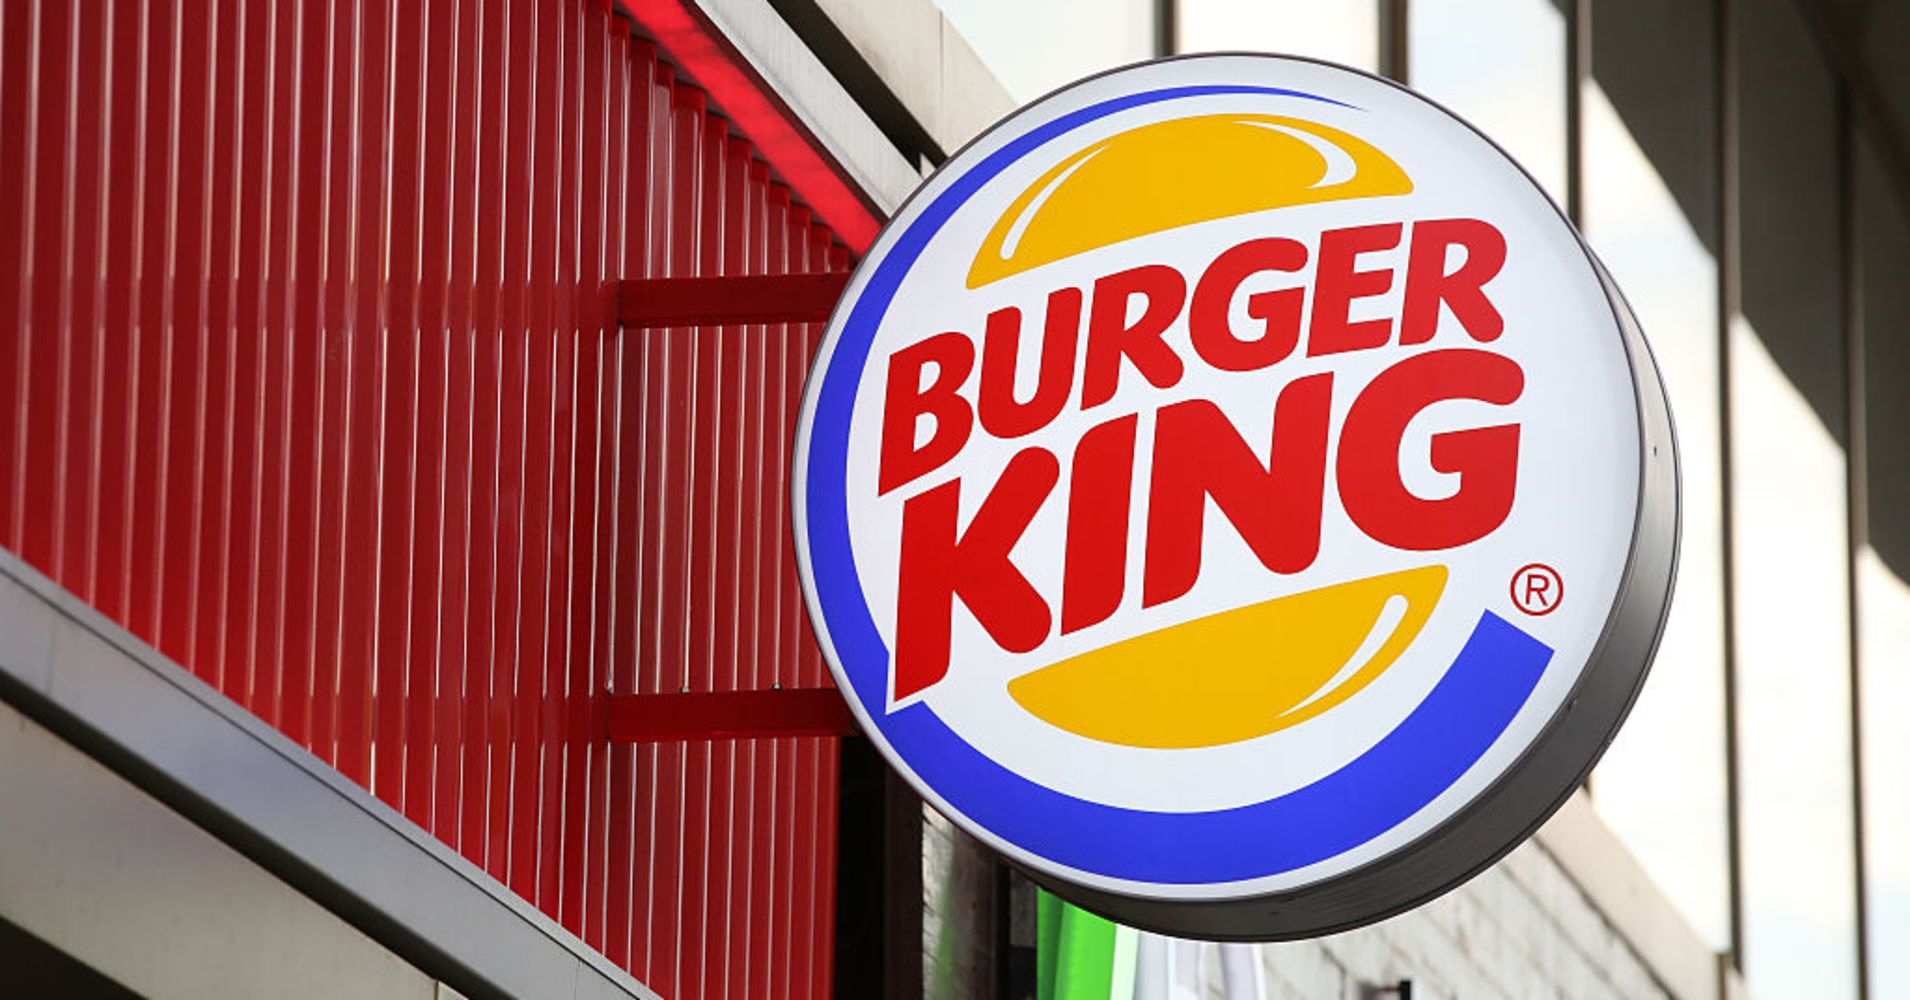 Burger King pulls New Zealand chopsticks ad after outcry in China